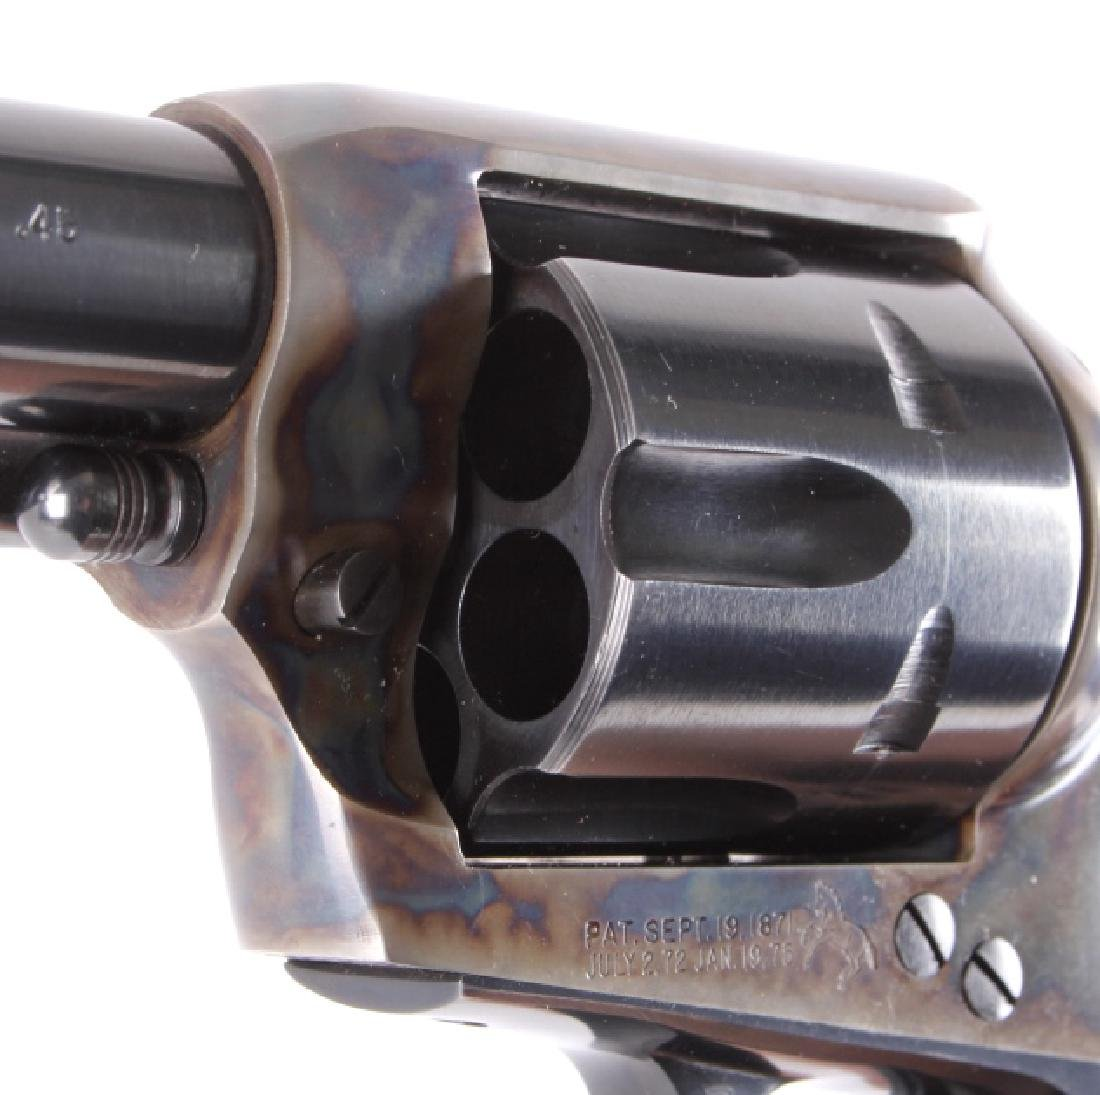 "Colt 2nd Gen. Single Action Army 45 Revolver 4.75"" - 9"